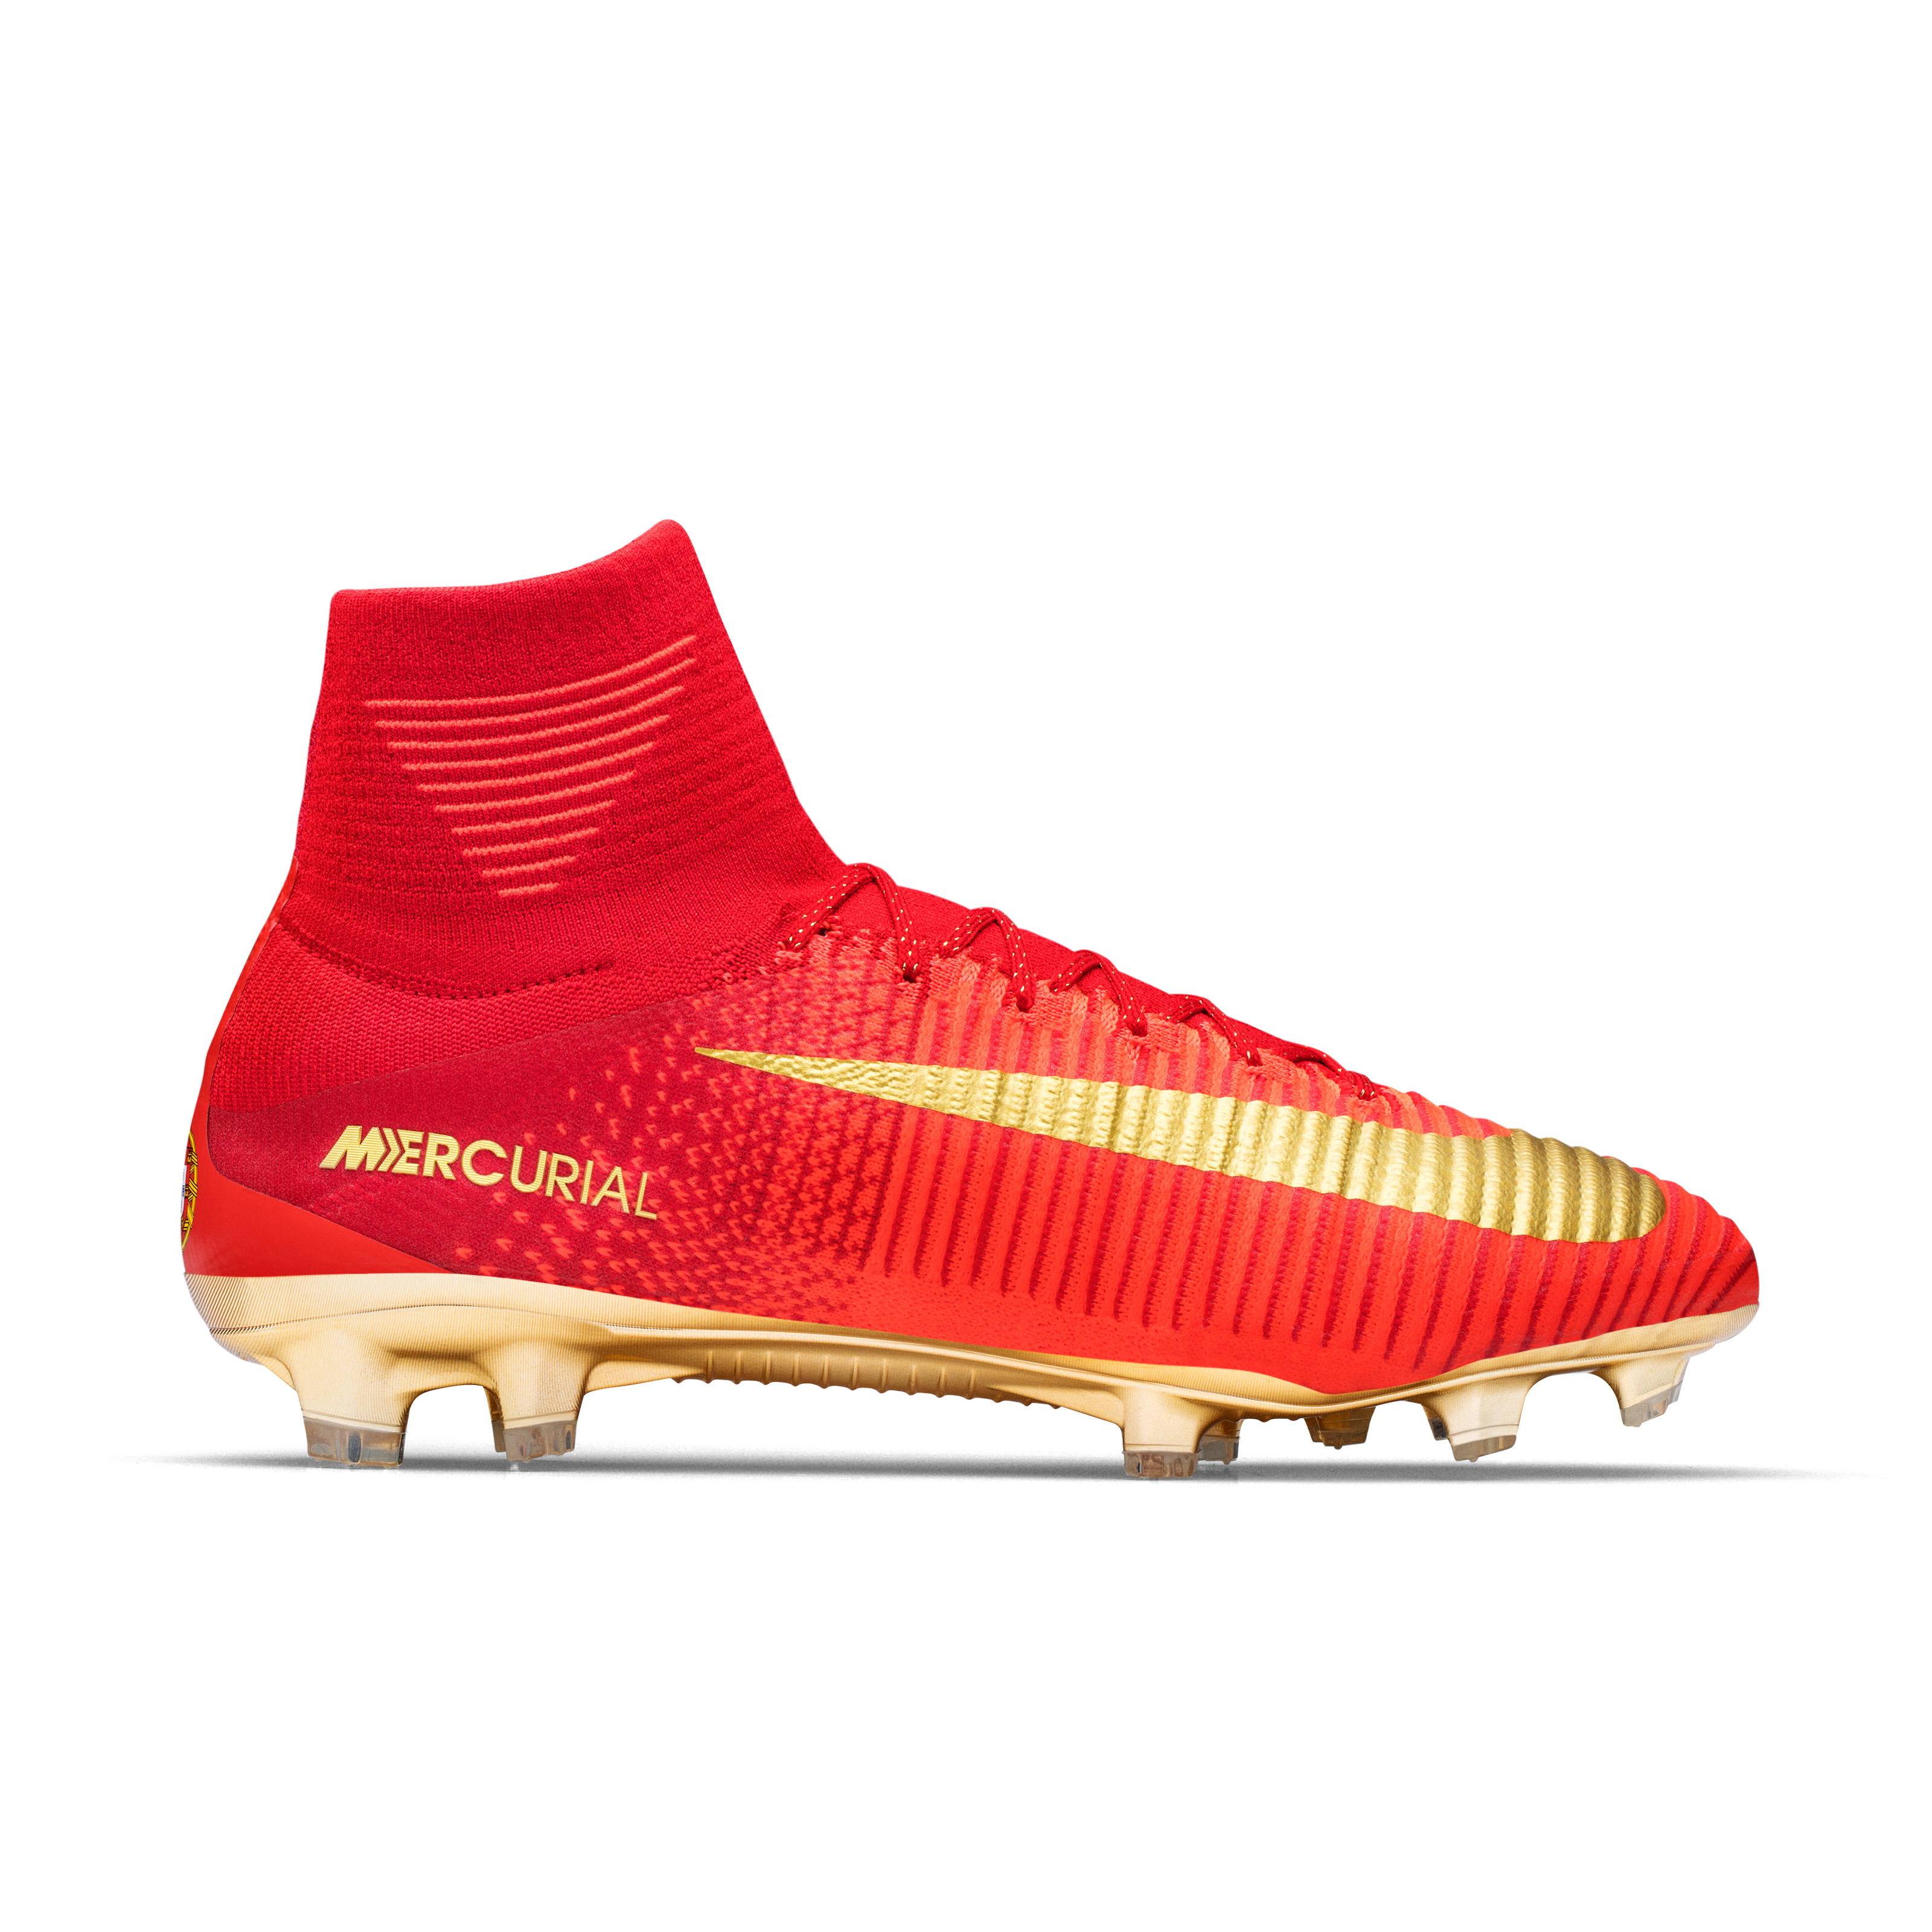 show me pictures of nike shoes cr7 news now 856243